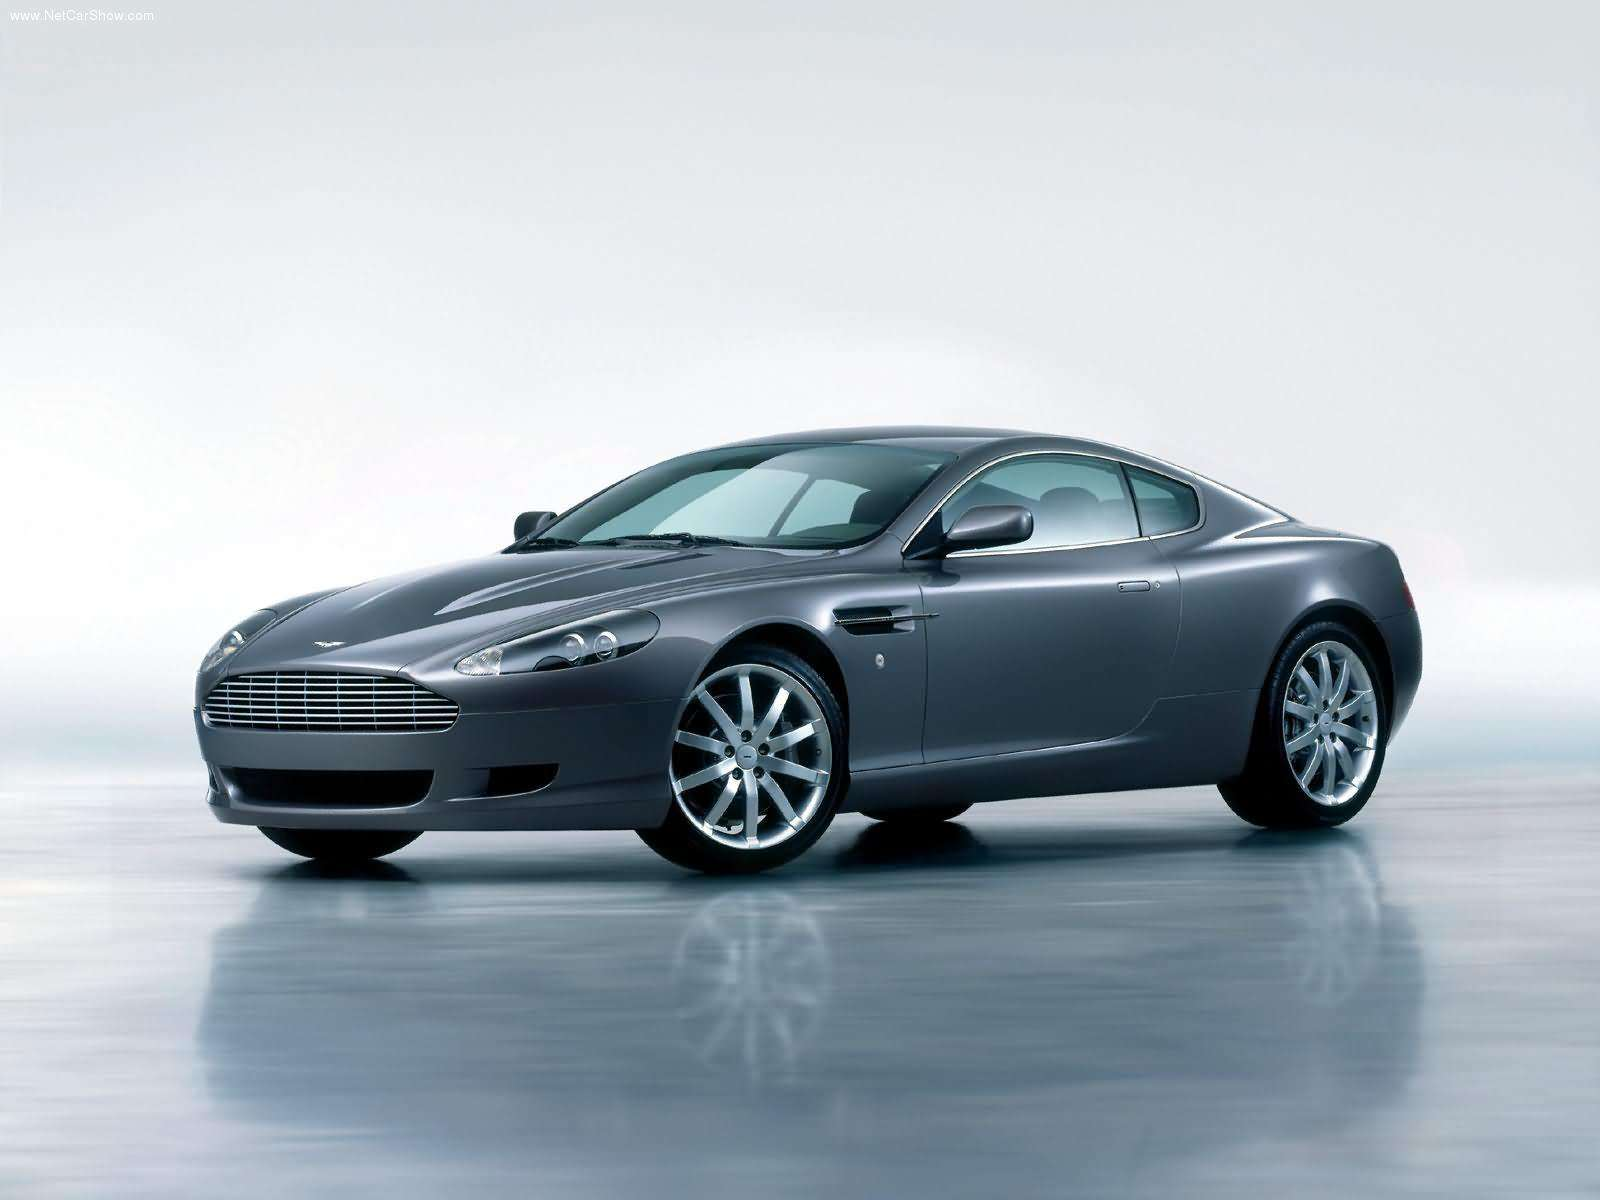 Aston Martin DB9 Coupe 2005